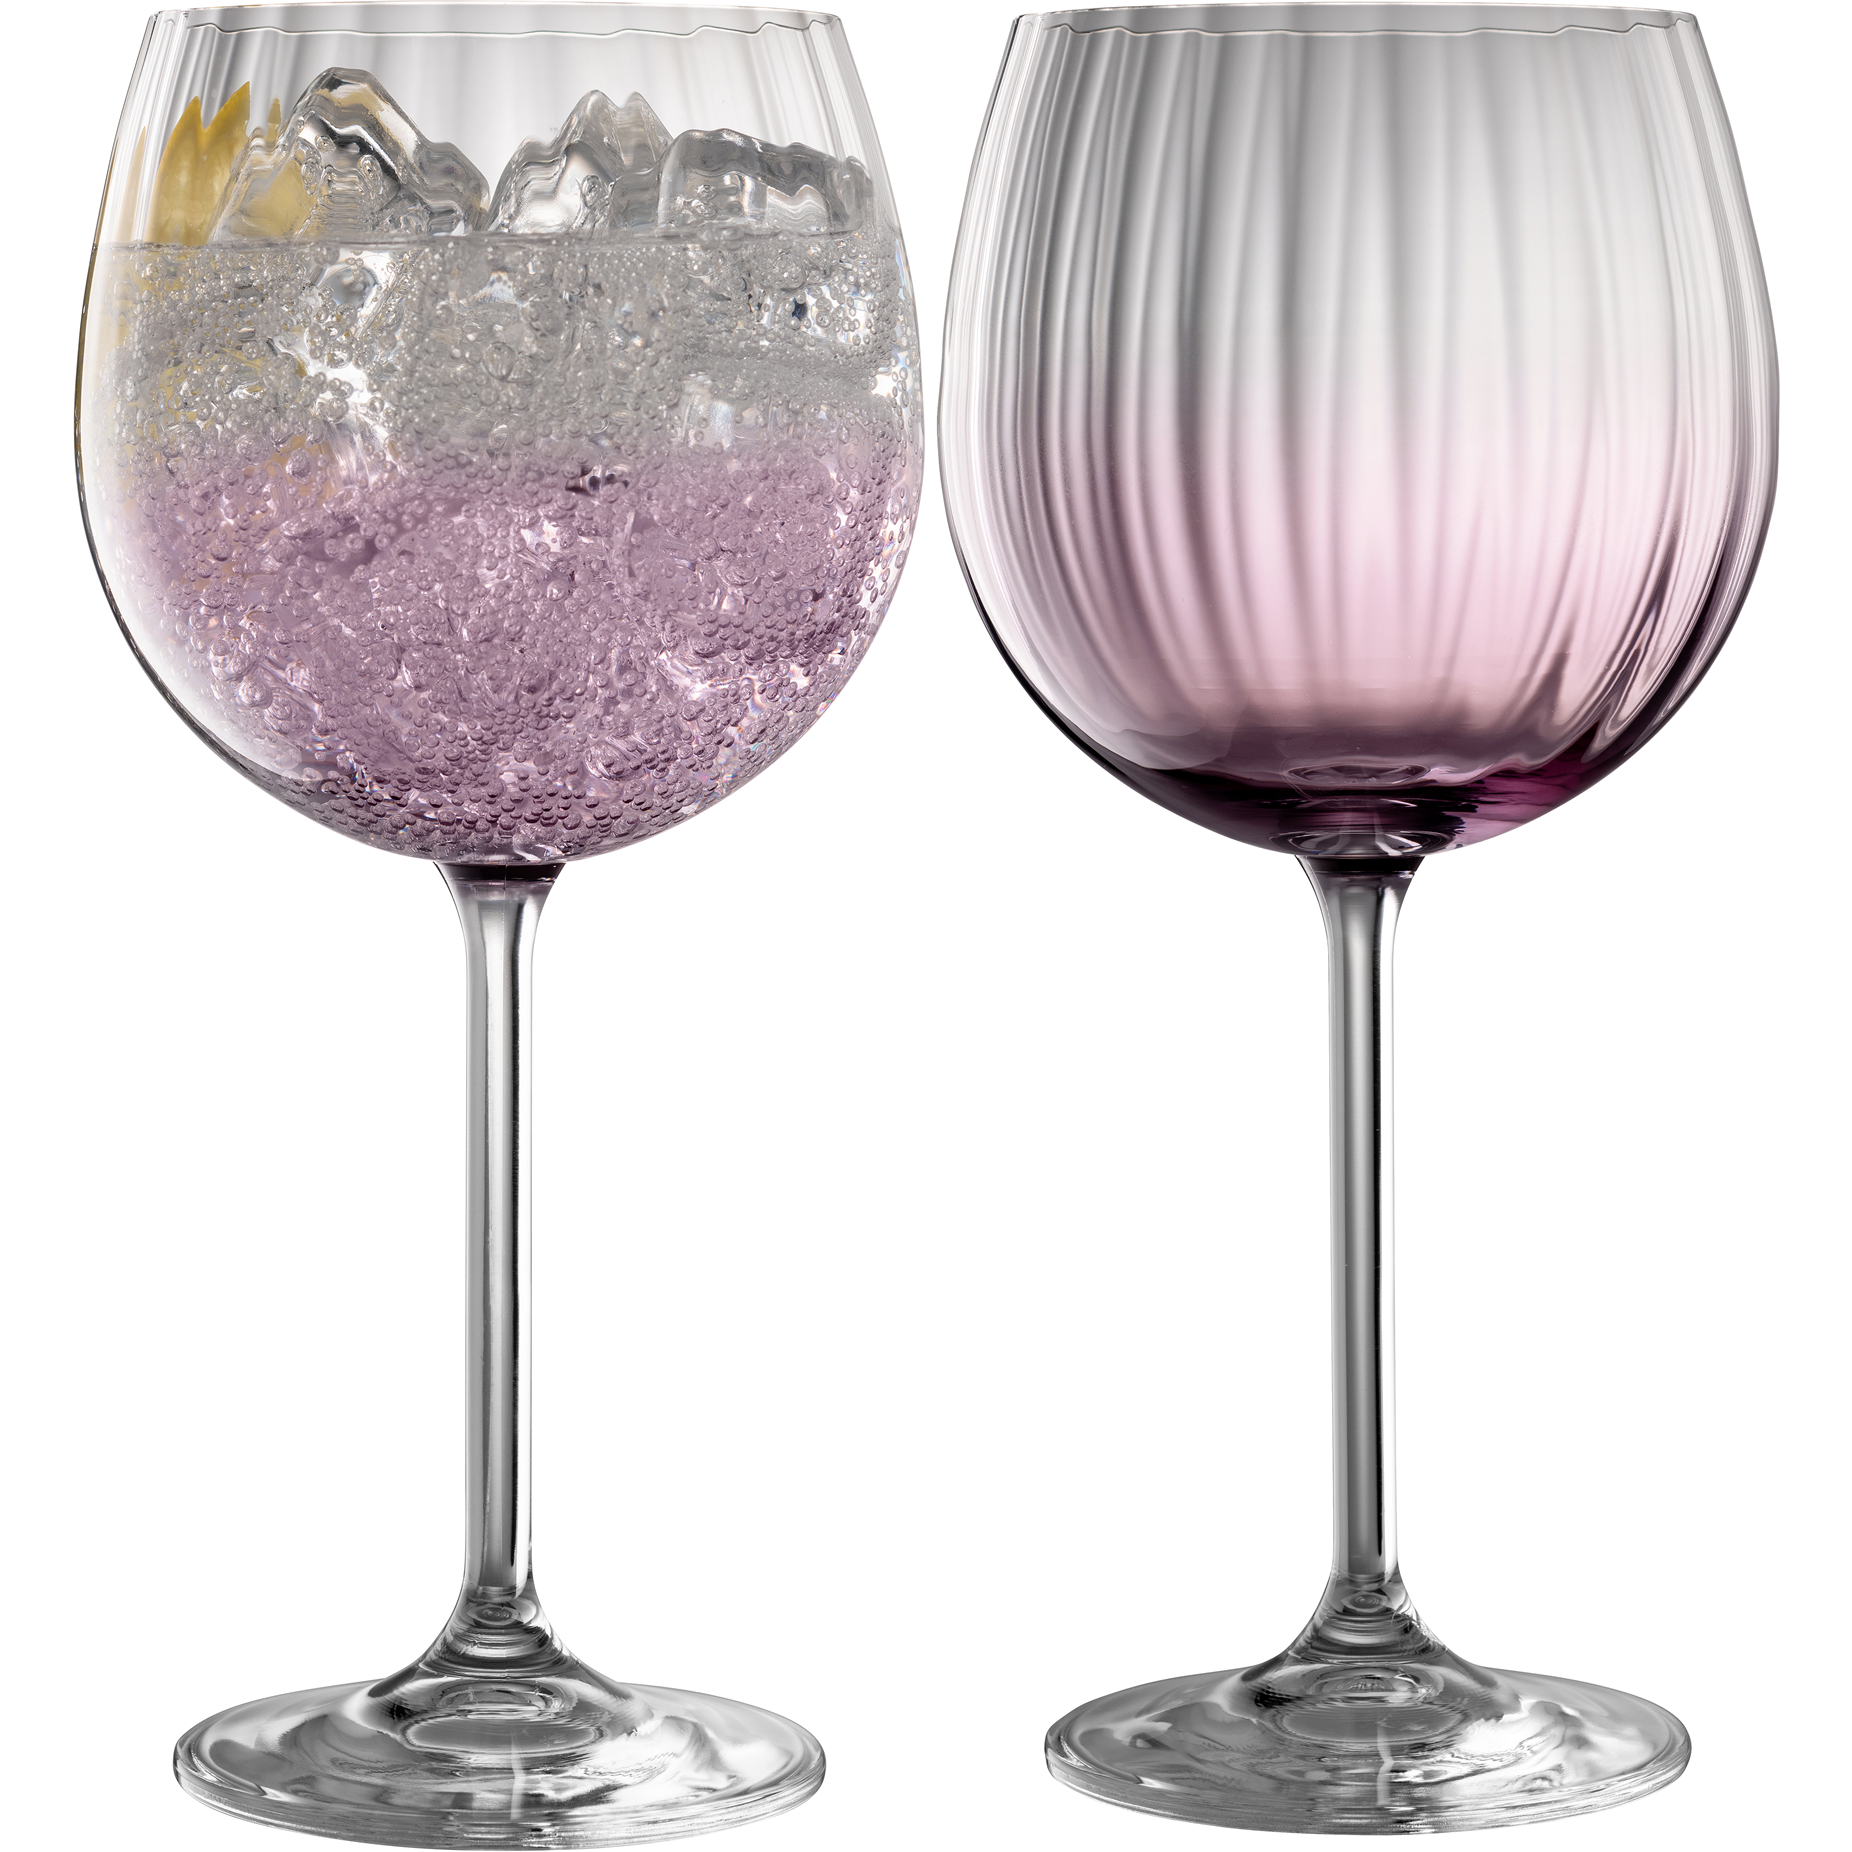 Erne Gin and Tonic Glasses Amethyst